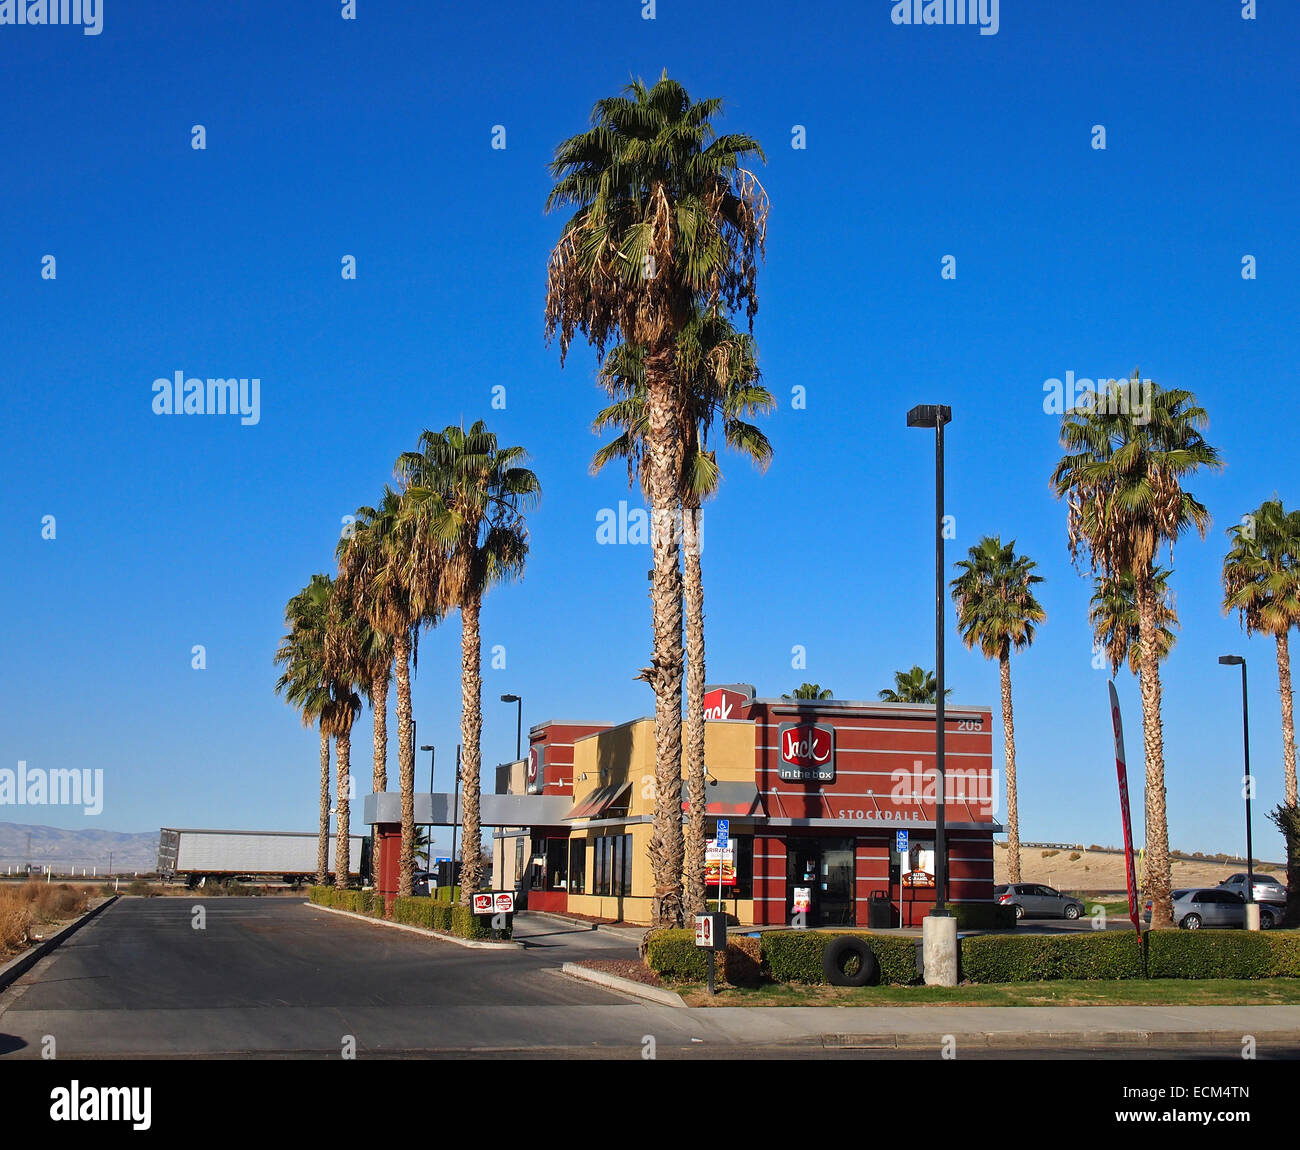 Jack in the Box restaurant, San Joaquin Valley, California, USA - Stock Image